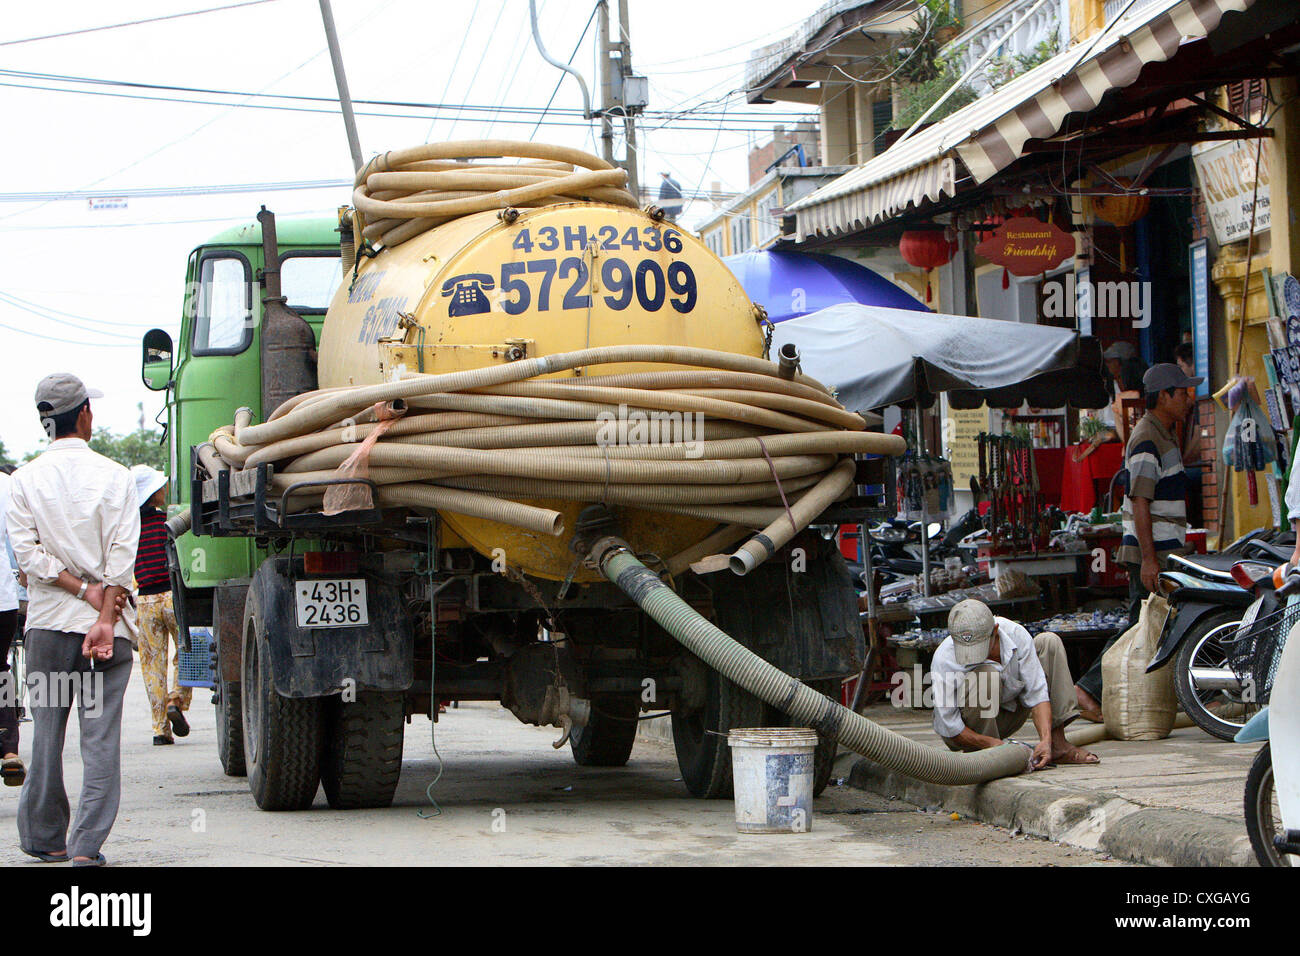 Vietnam suck, the city's sewer system - Stock Image